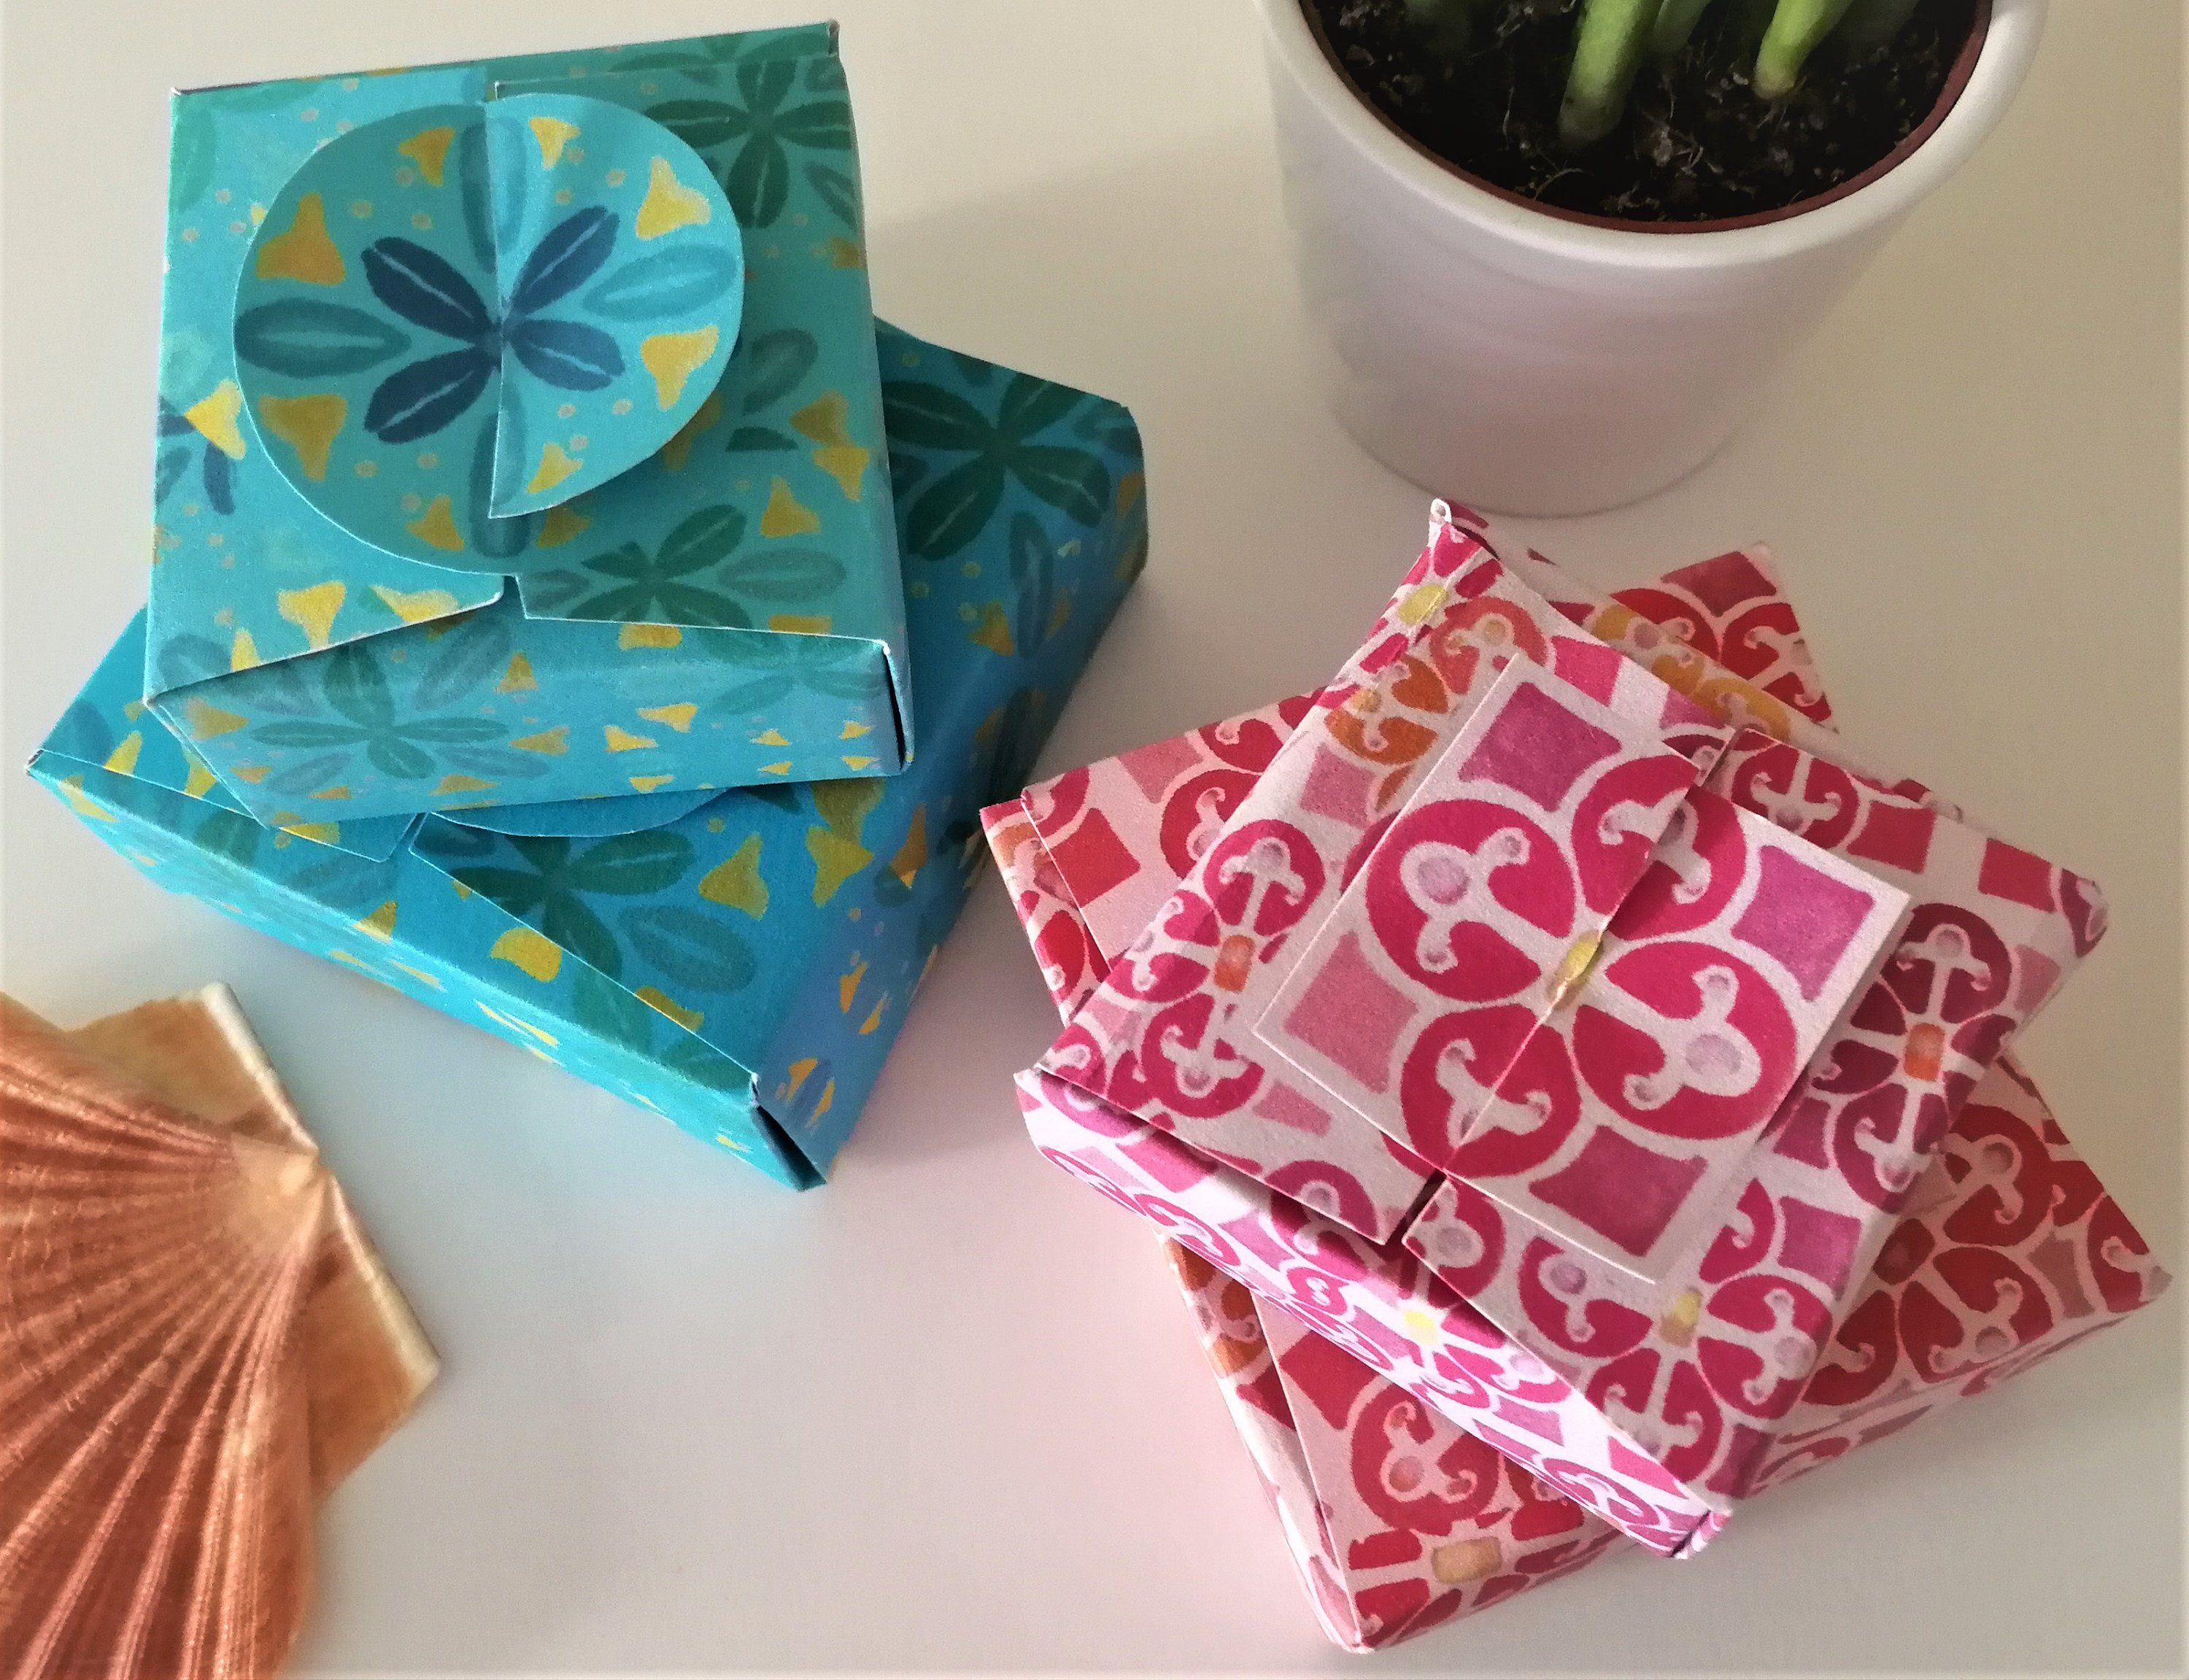 Set of 4 DIY Giftboxes Colorful Patterns inspired by Portugal